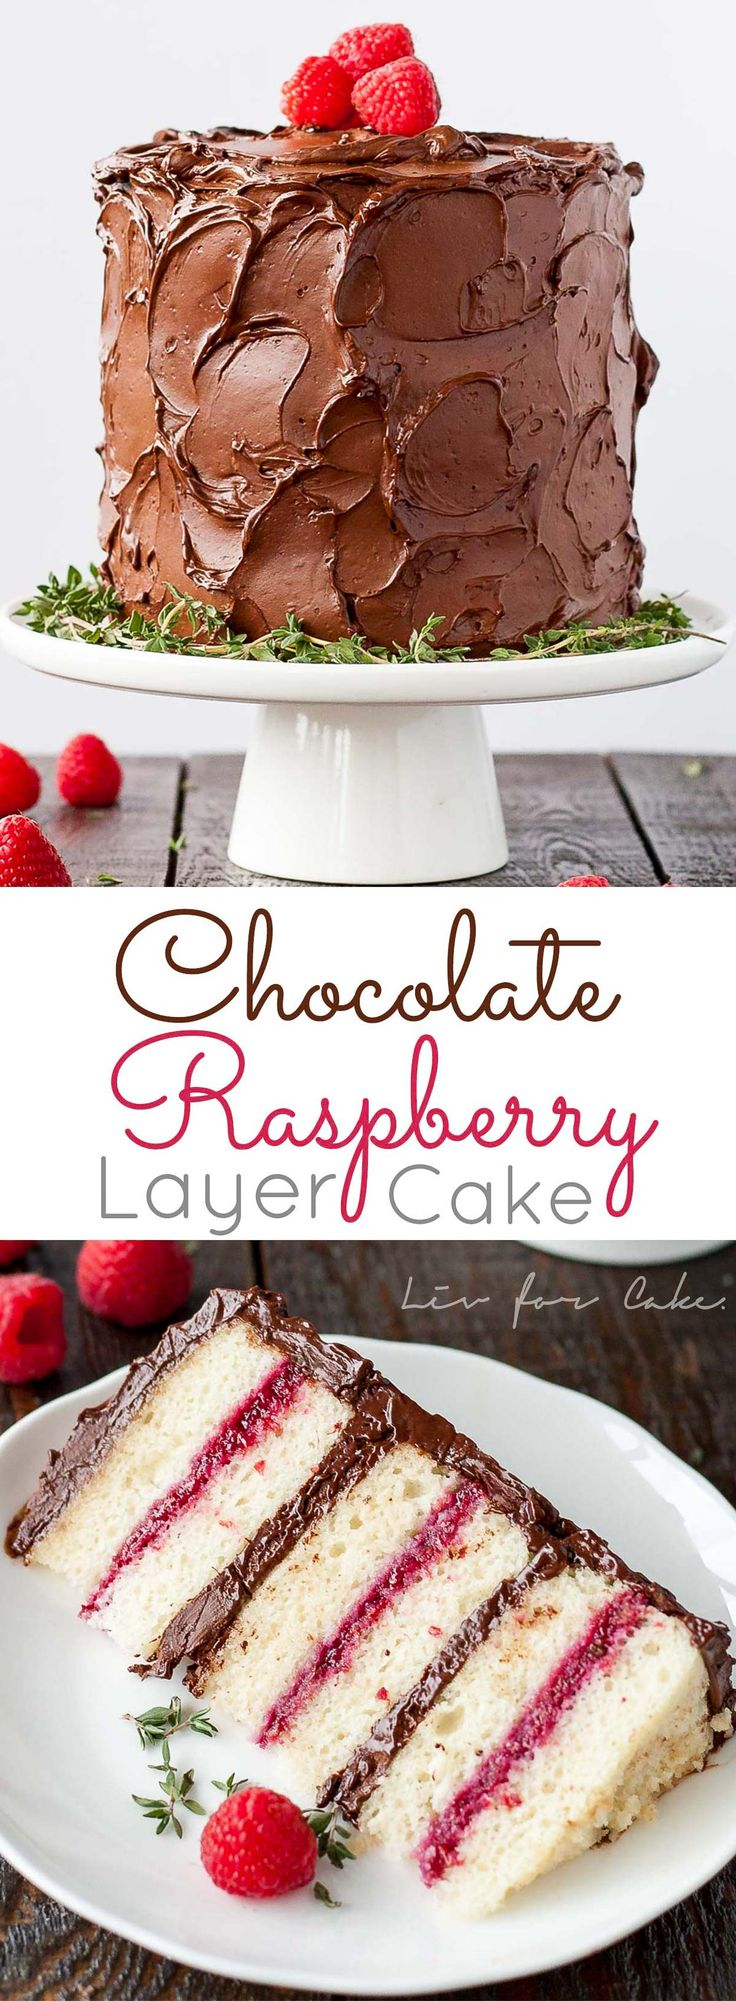 Chocolate Raspberry Layer Cake. Six glorious layers of vanilla cake with…